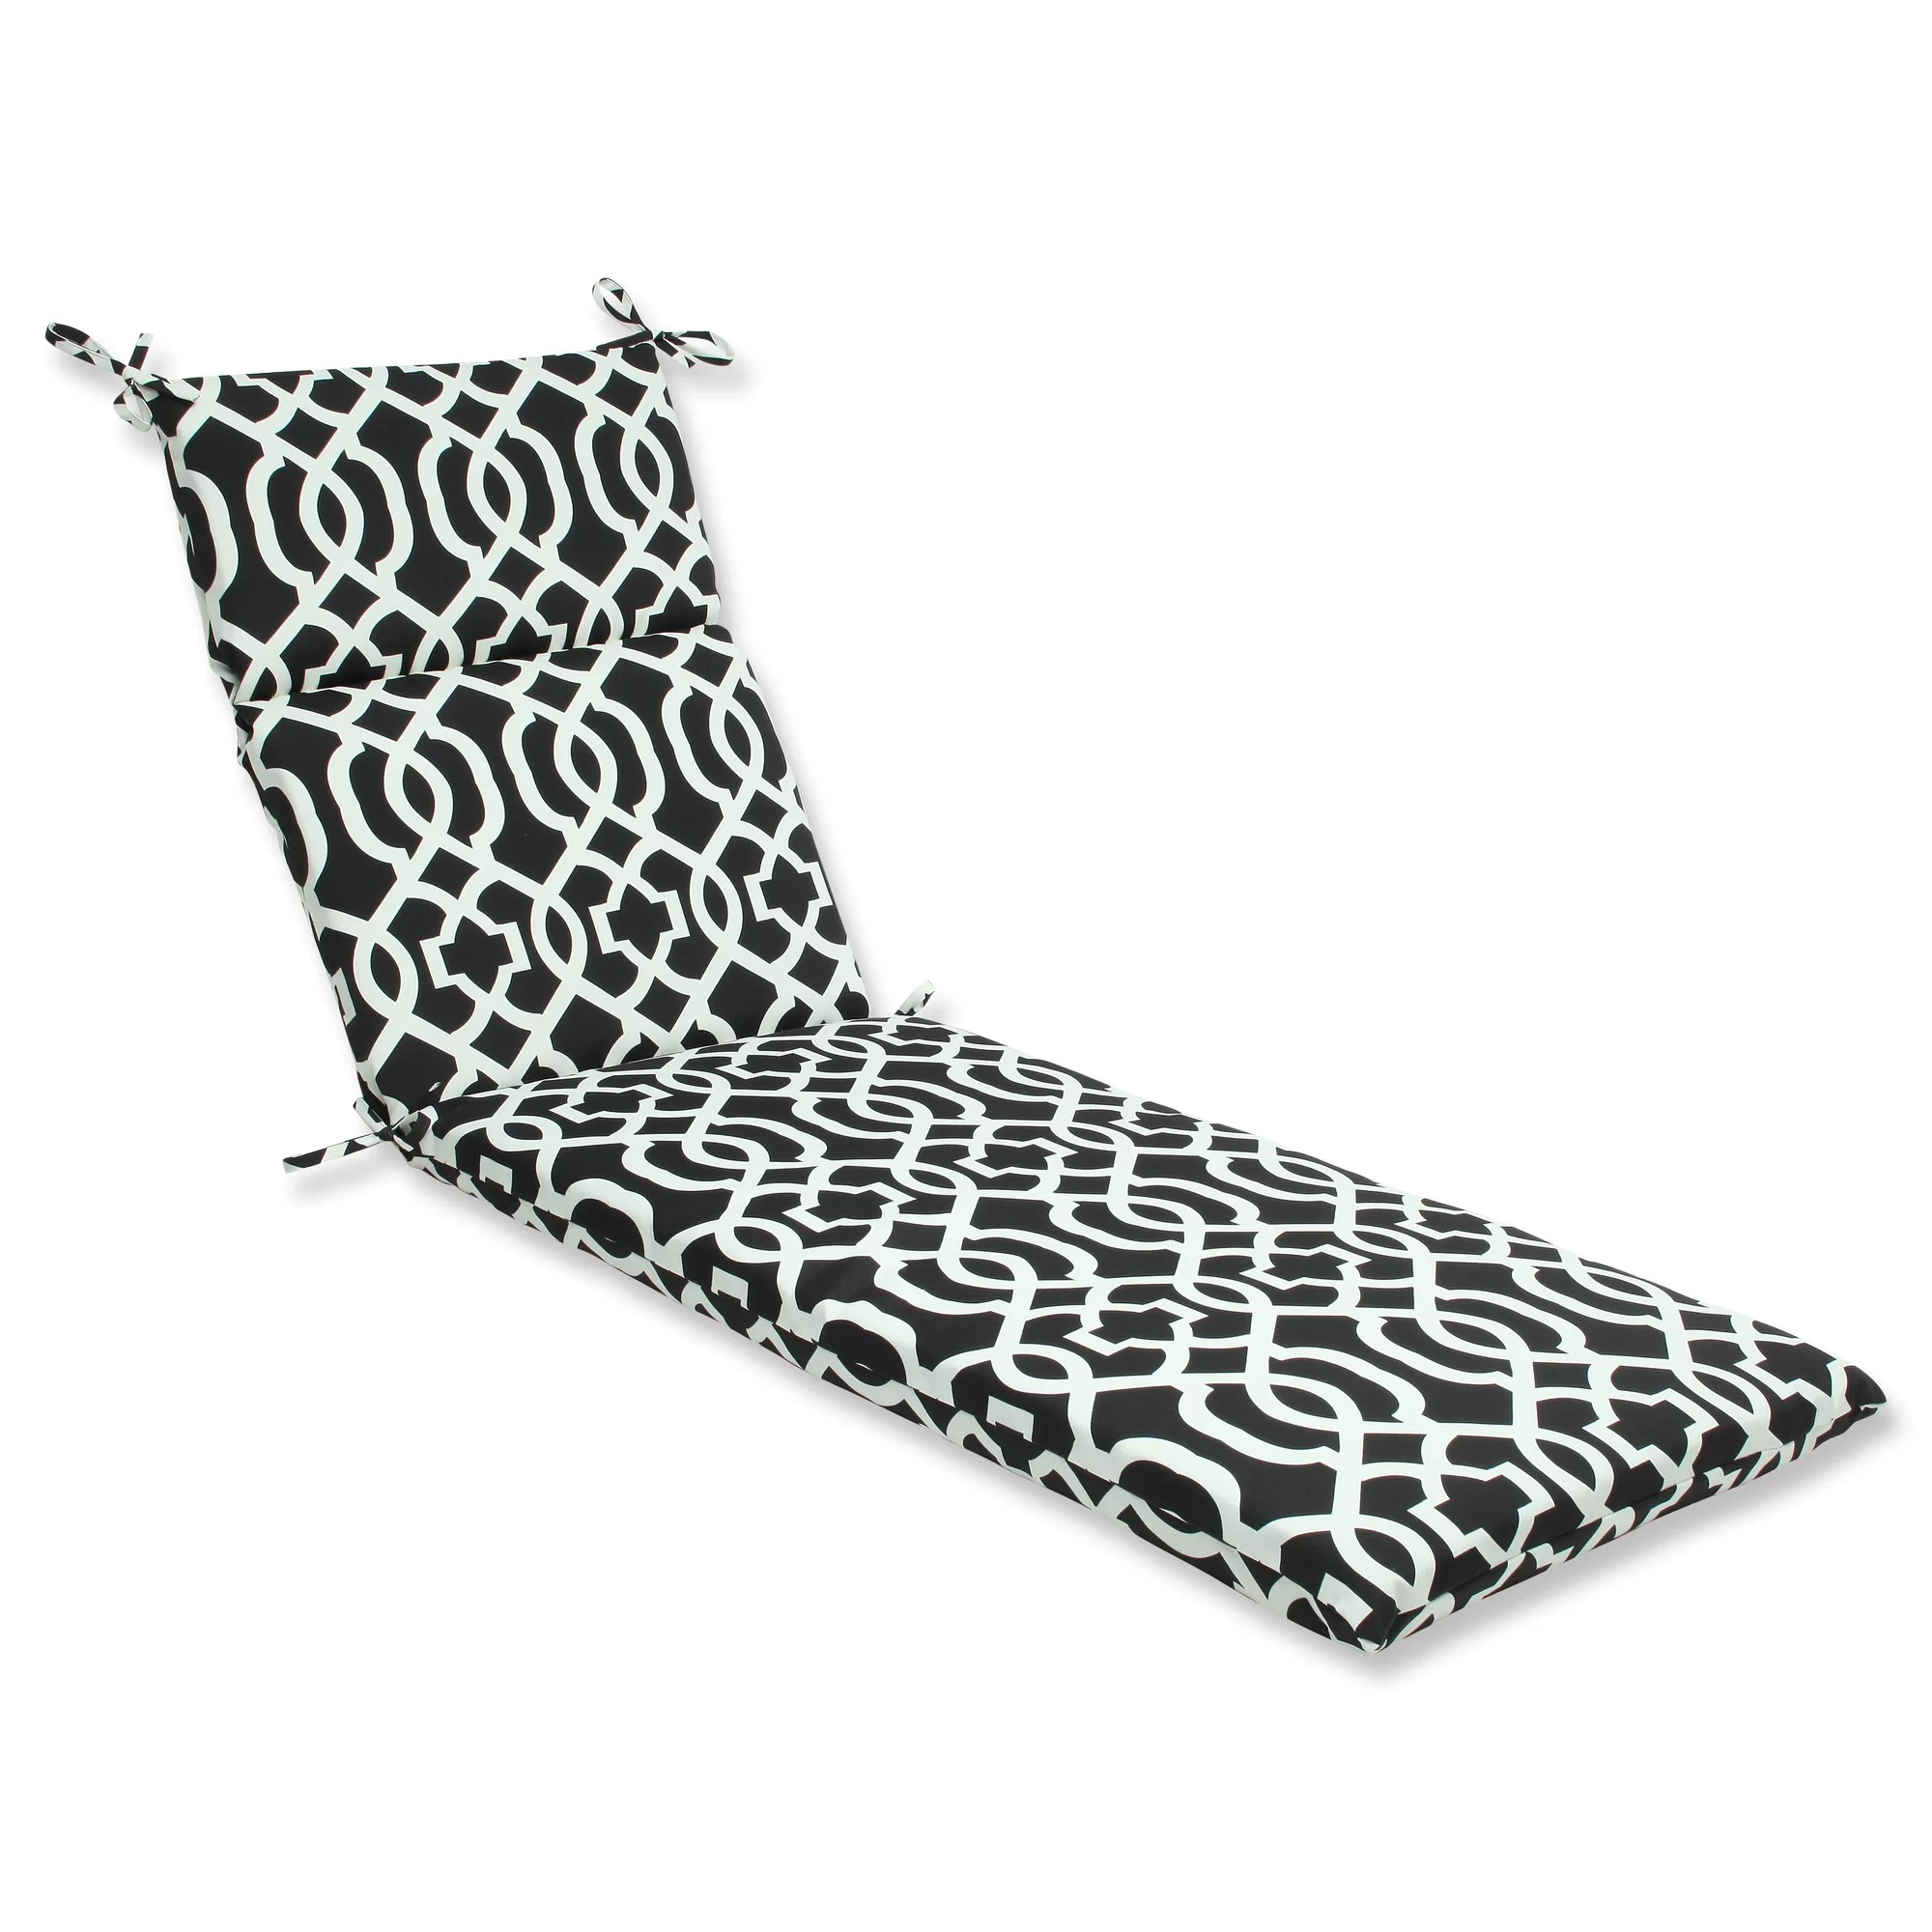 Pillow Perfect New Geo Outdoor Chaise Lounge Cushion